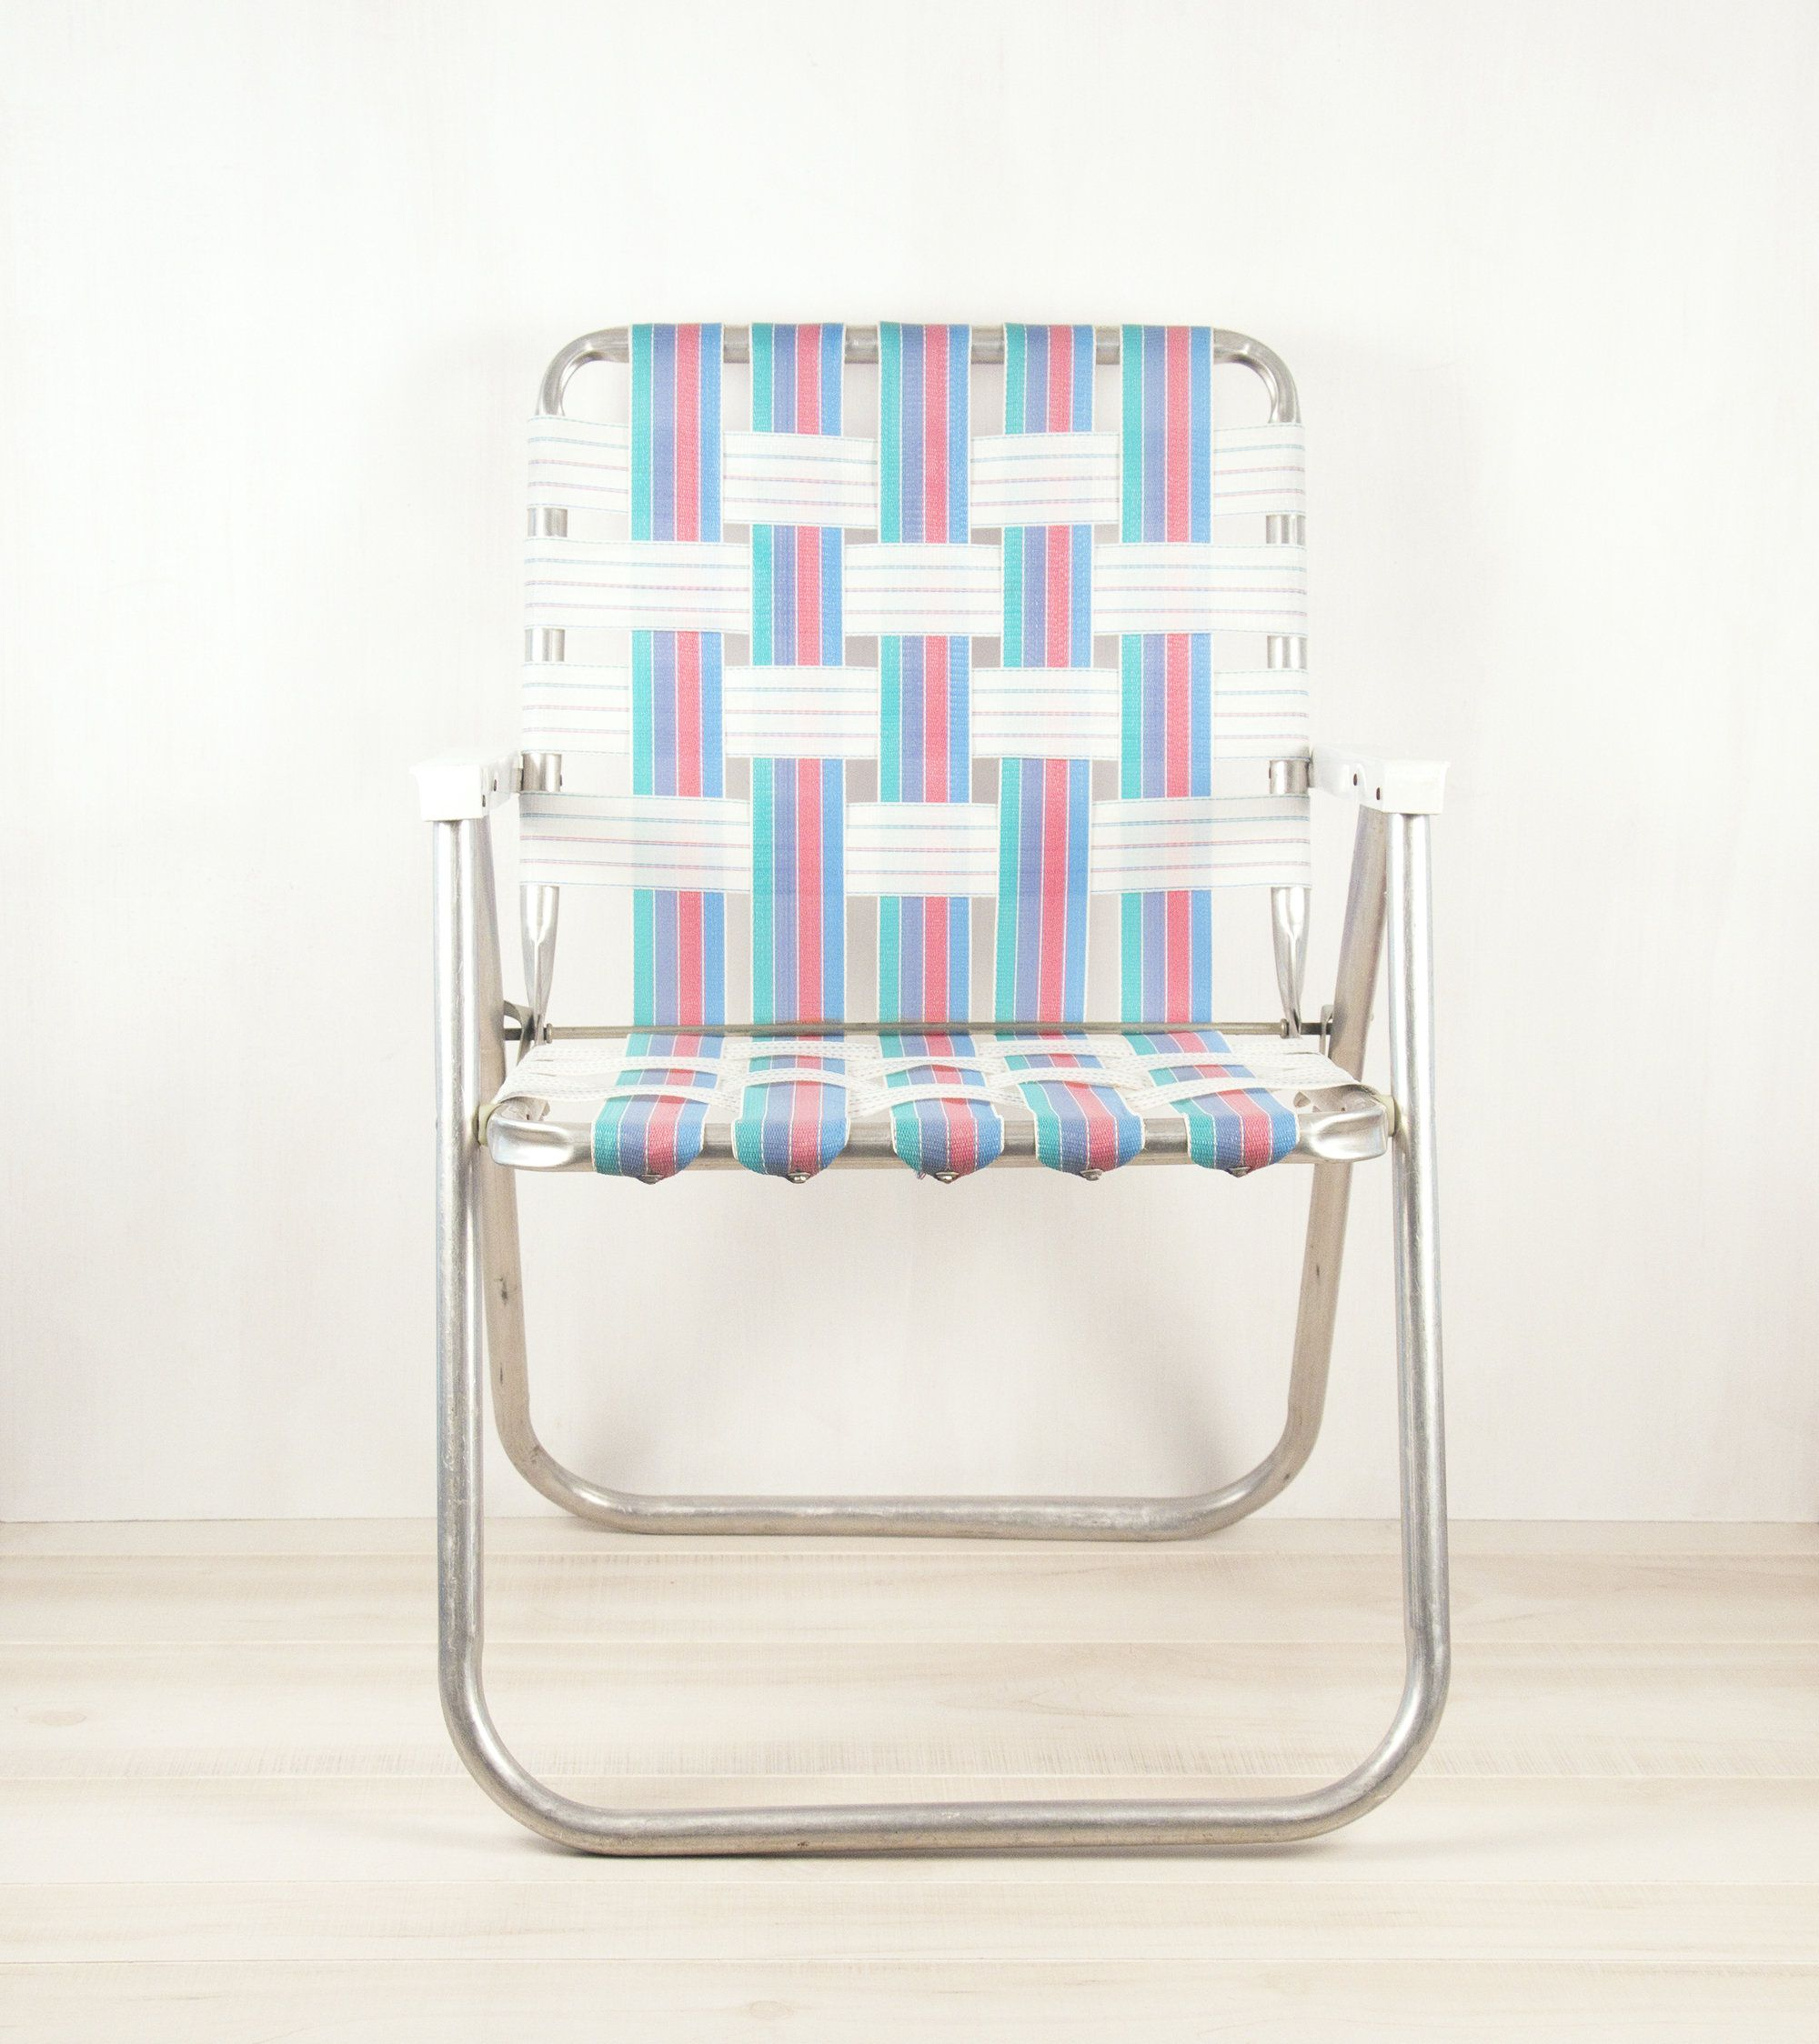 Superb Aluminum Webbed Folding Lawn Chair Blue Pink Green Caraccident5 Cool Chair Designs And Ideas Caraccident5Info